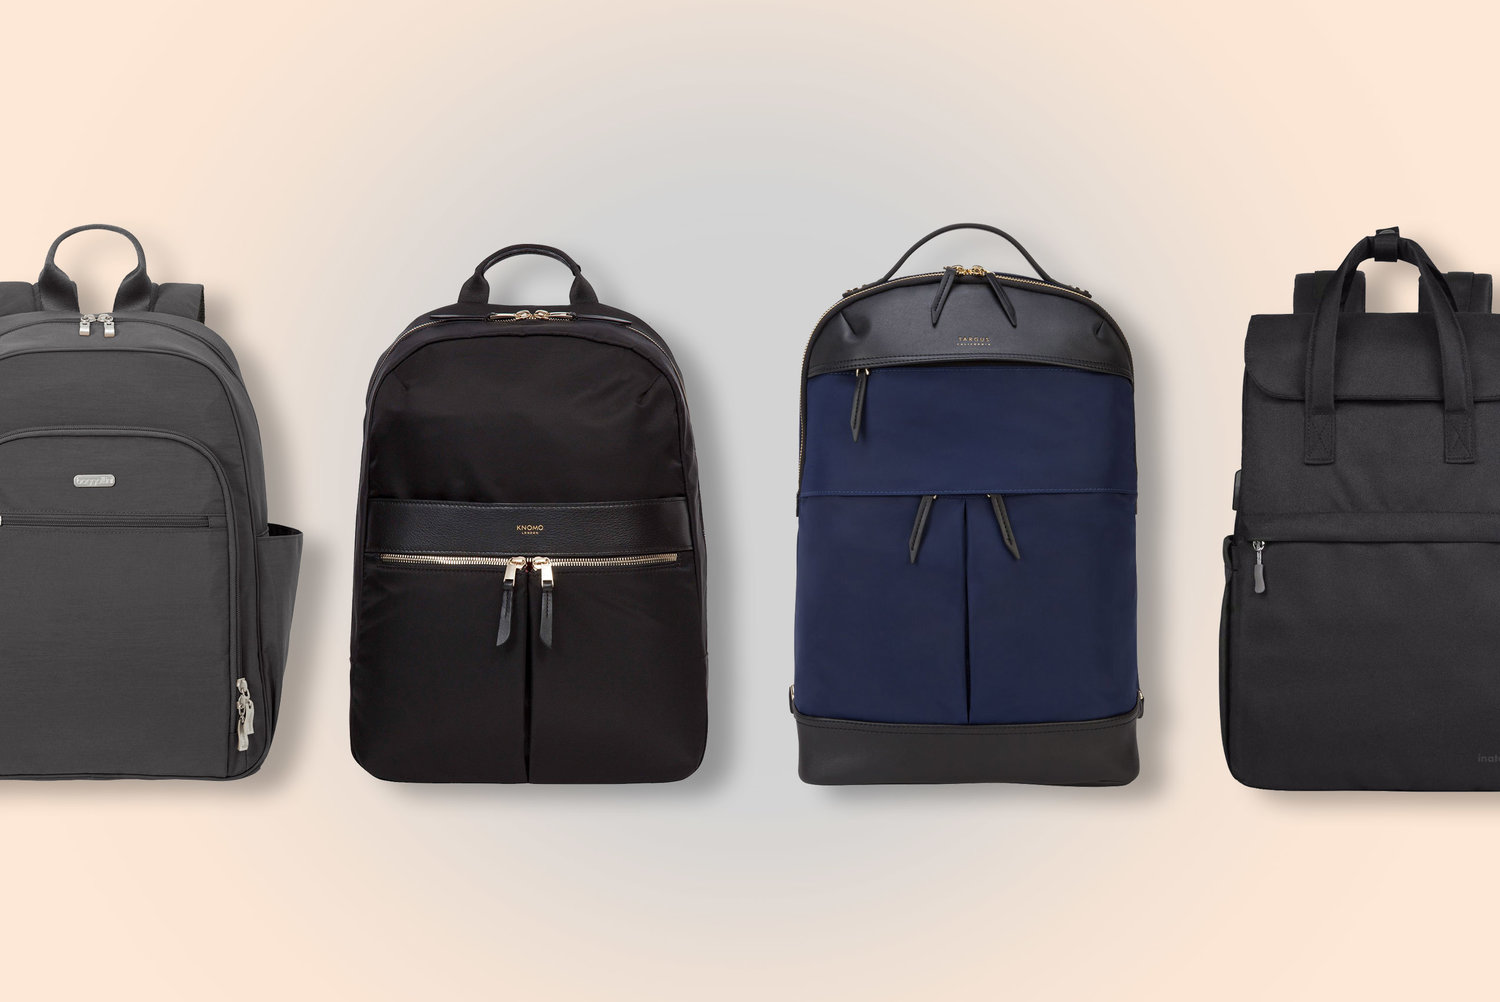 10 Best Women s Backpacks for Work that are Sophisticated and Smart    Backpackies 3110c56130